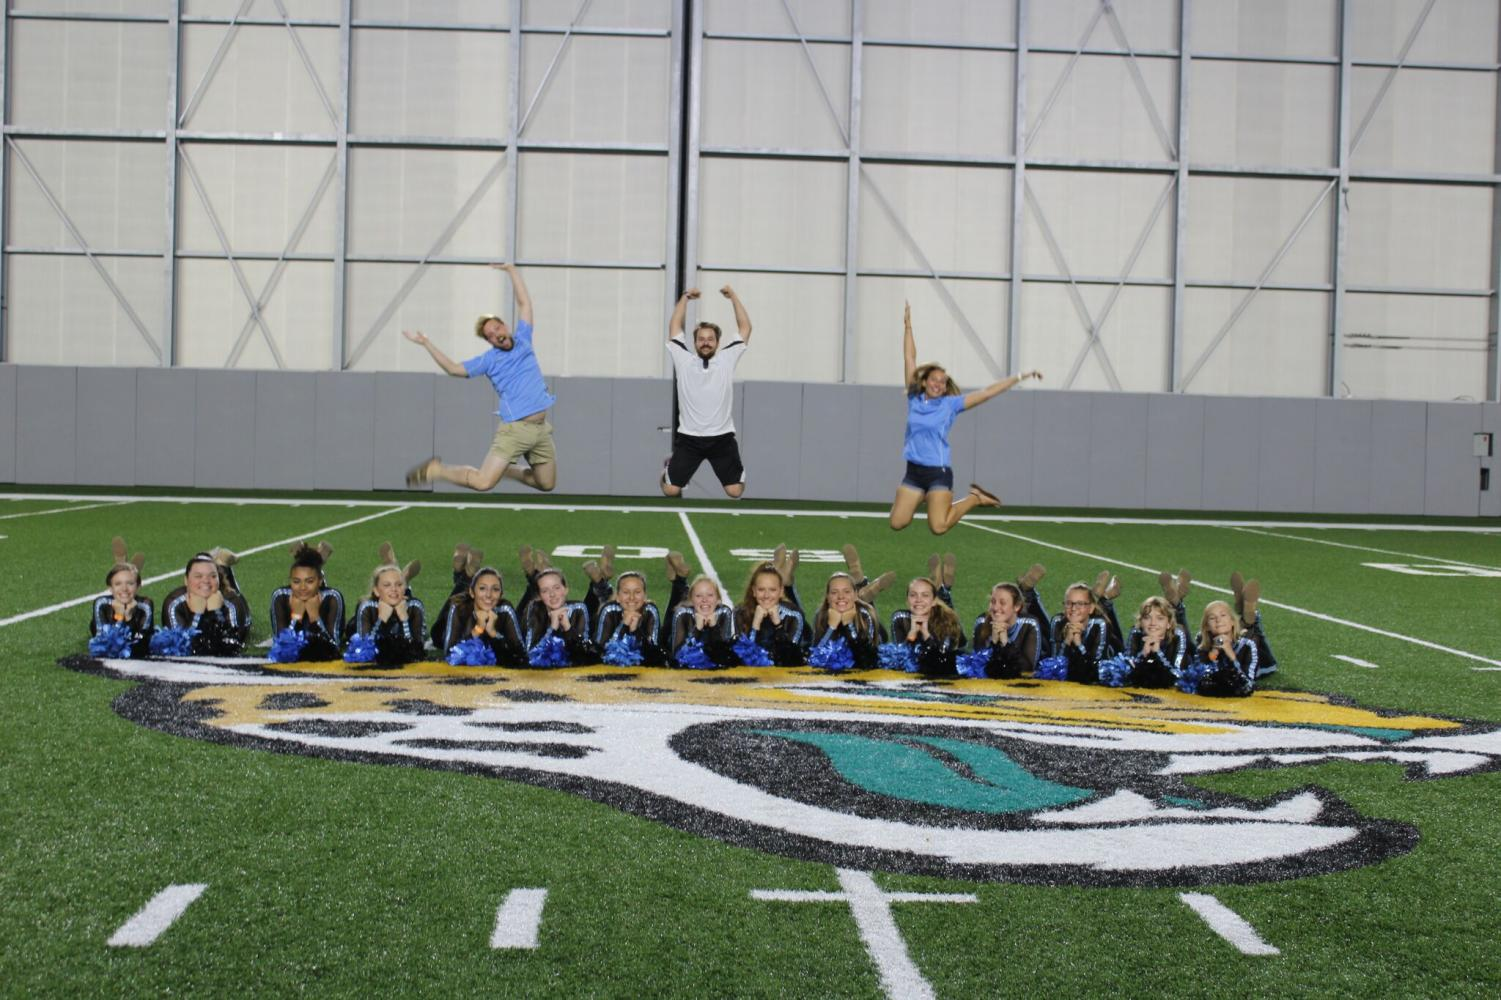 On Aug. 25, the colorguard team goes to perform at the Jaguars and Falcons NFL game.